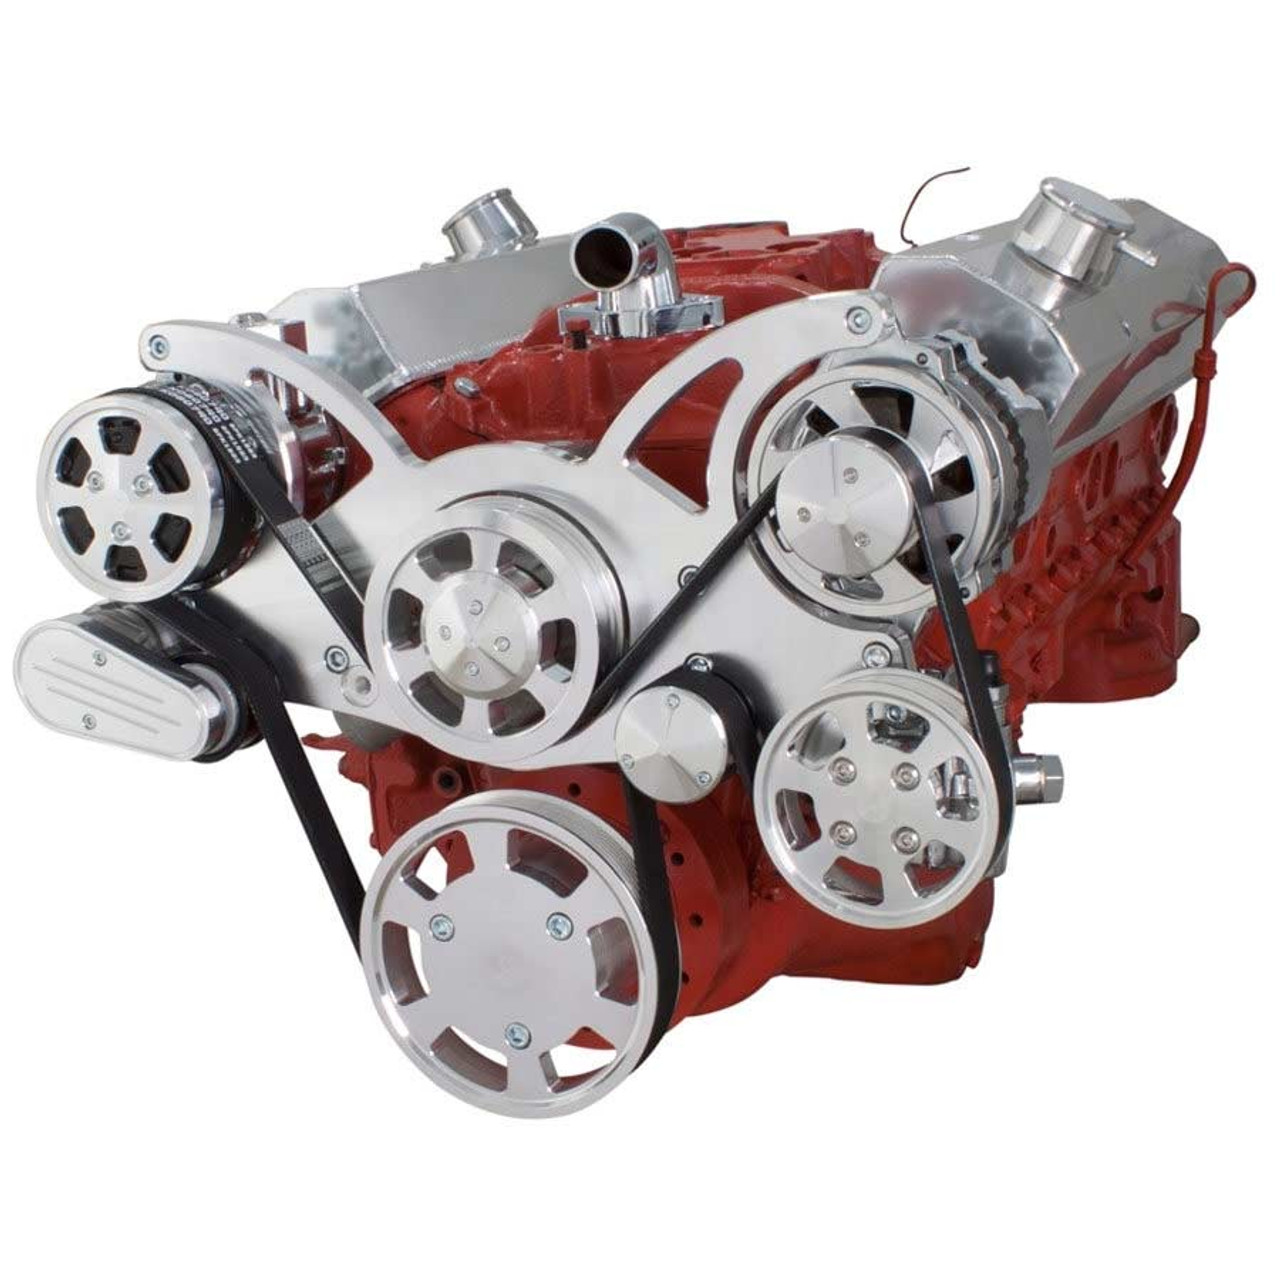 hight resolution of  engine serial number serpentine conversion kit for small block chevy 283 350 400 with ac on 283